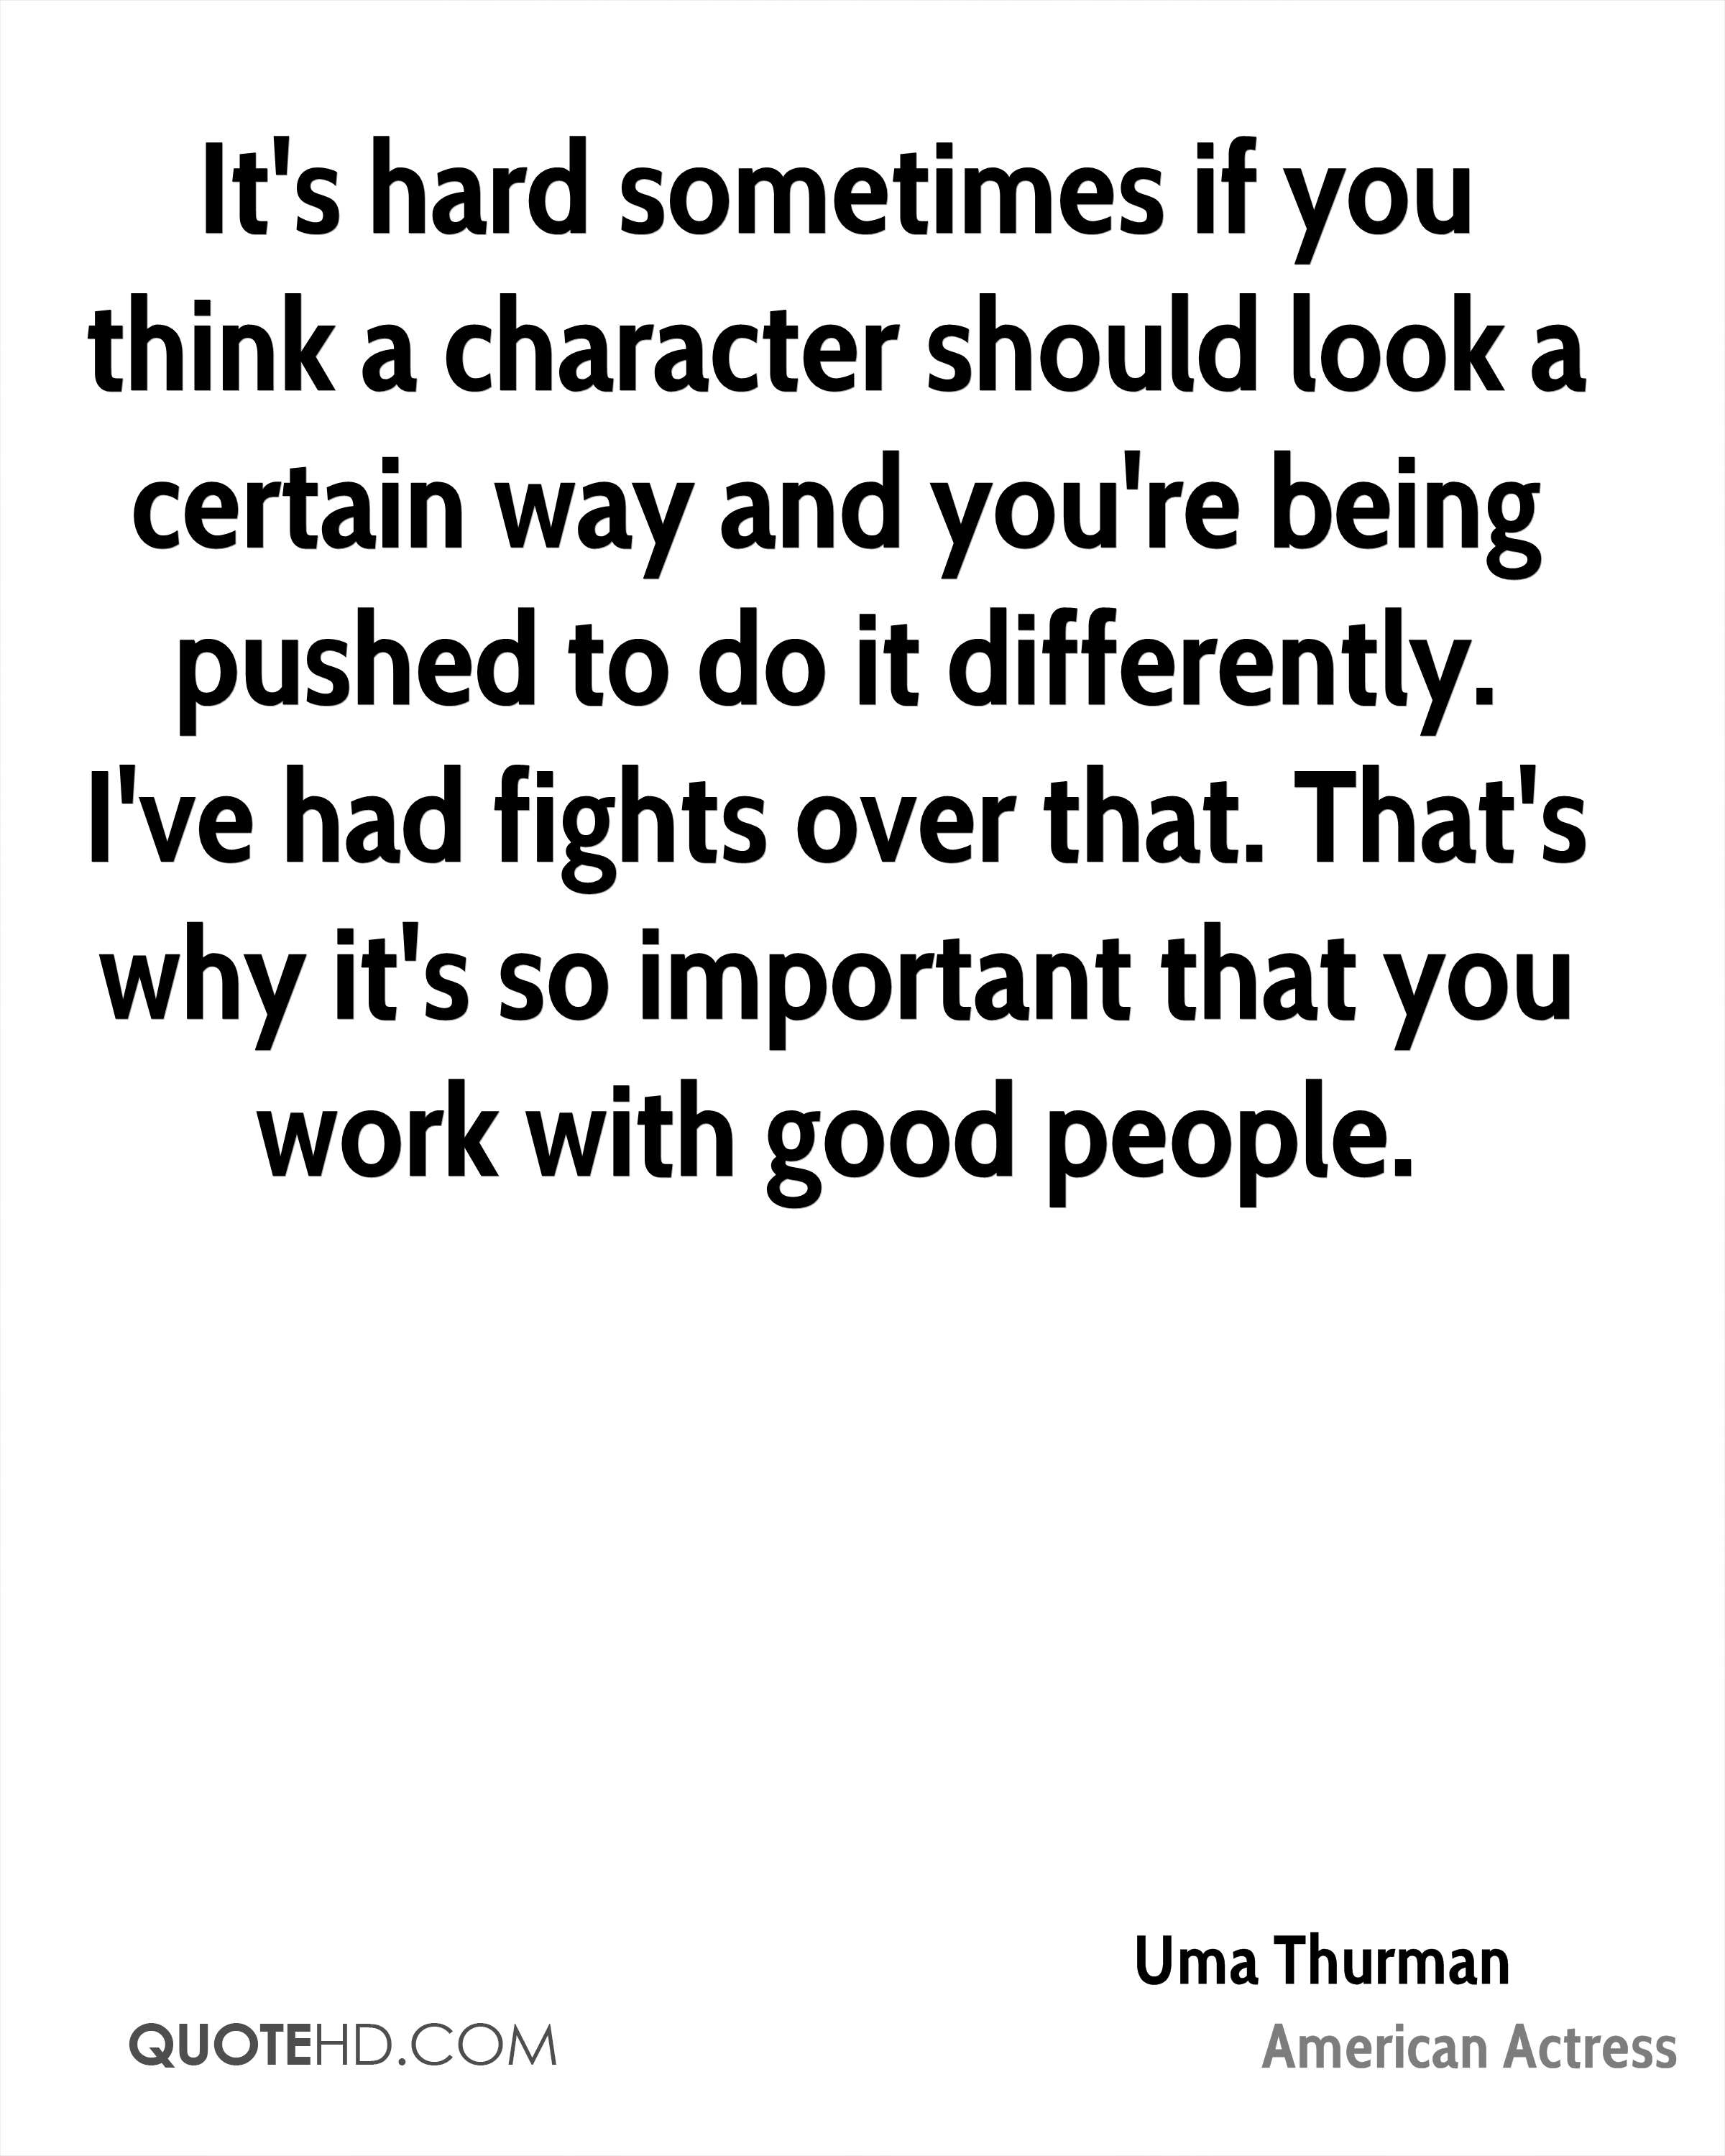 It's hard sometimes if you think a character should look a certain way and you're being pushed to do it differently. I've had fights over that. That's why it's so important that you work with good people.